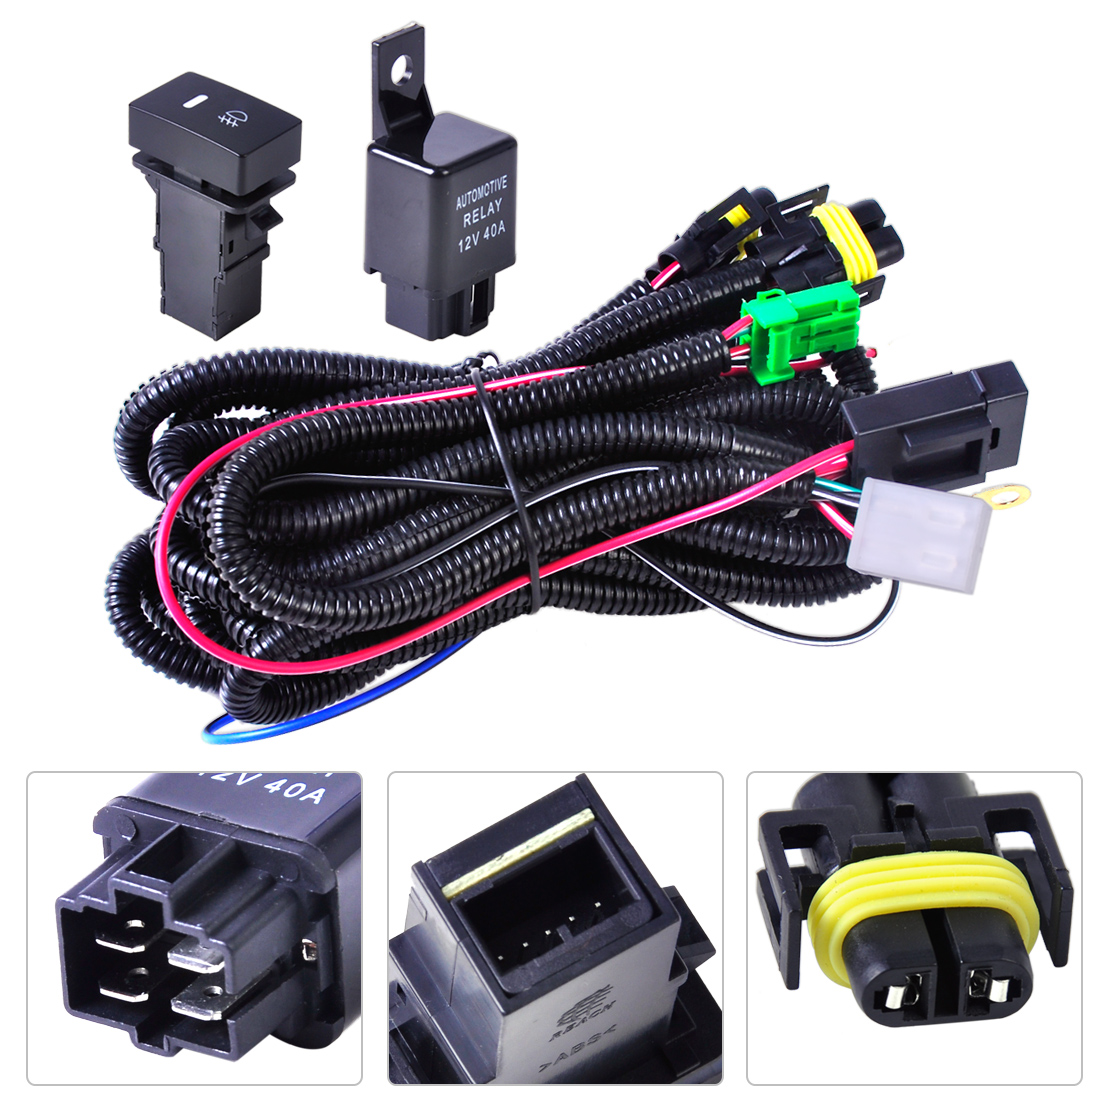 1 wiring harness sockets switch for h11 fog light lamp ford focus 2001 mustang fog light wiring harness at webbmarketing.co